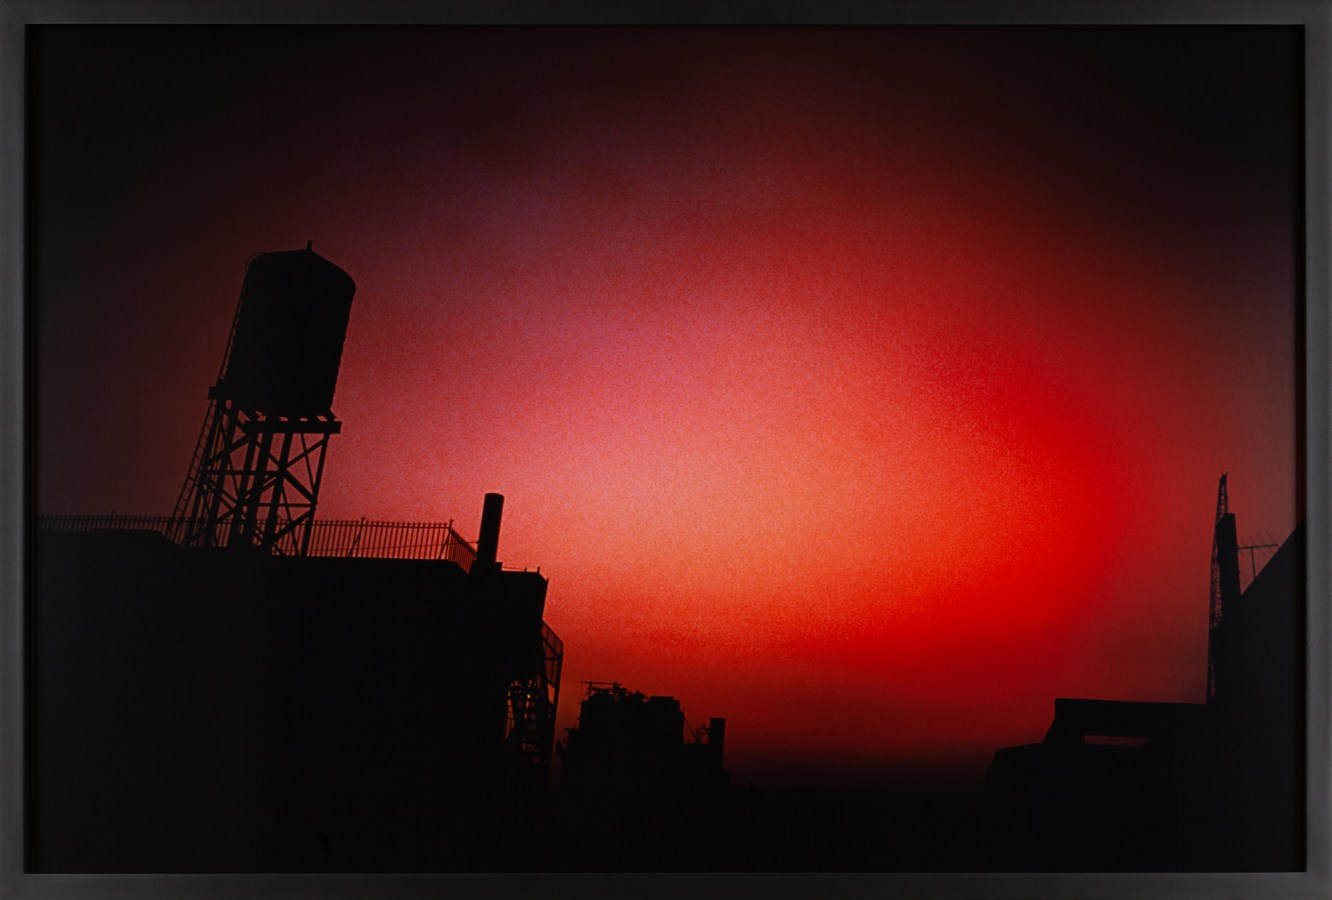 Color photograph of an overcast night sky with a red glow above city buildings and a rooftop watertower